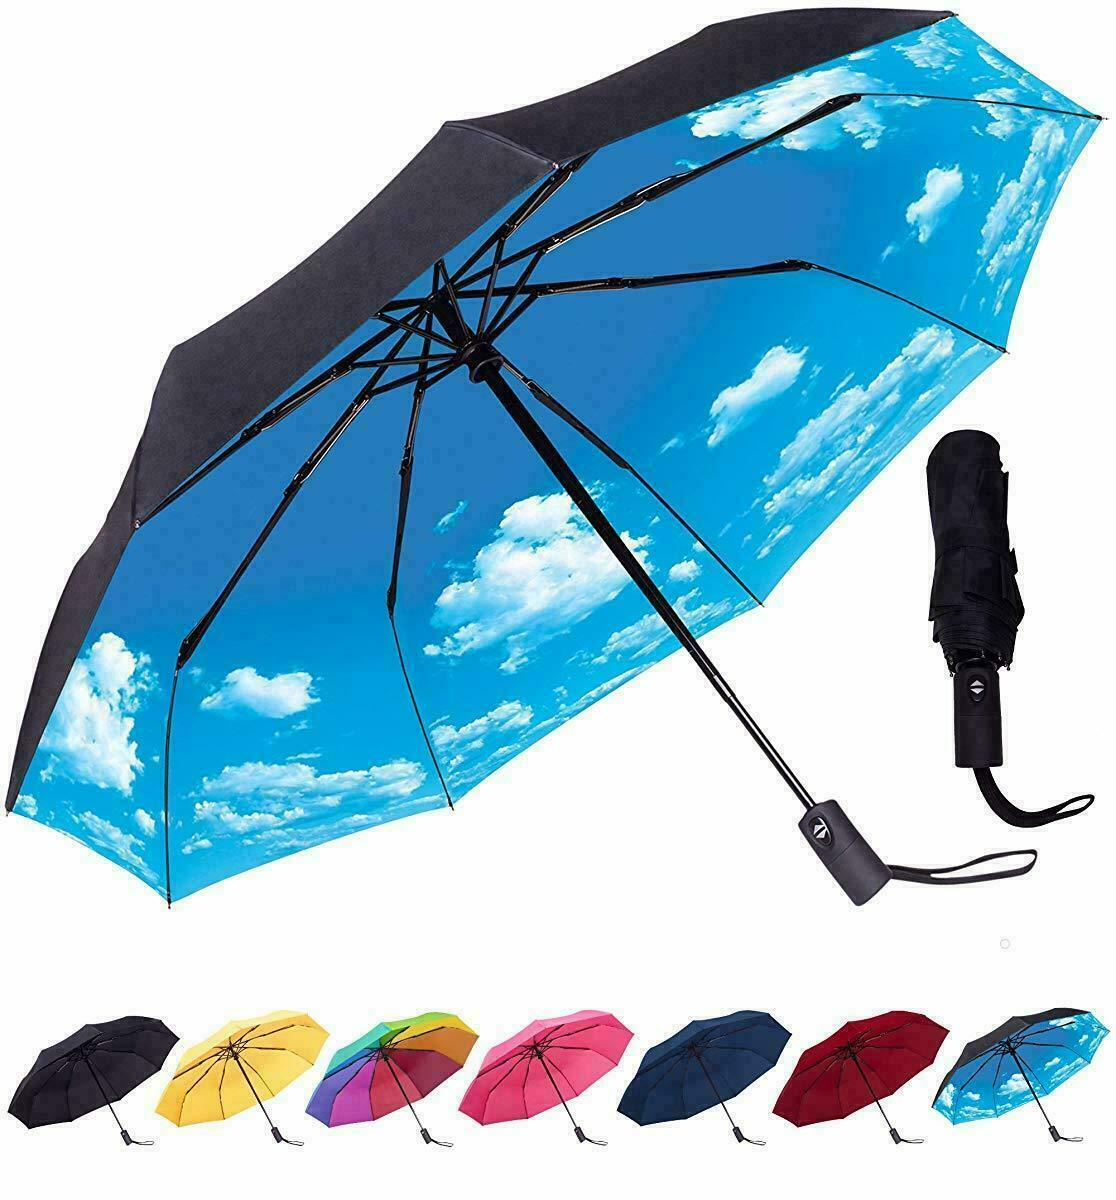 Primary image for Compact Travel Umbrella - Windproof, Reinforced Canopy, Ergonomic Handle, Auto O